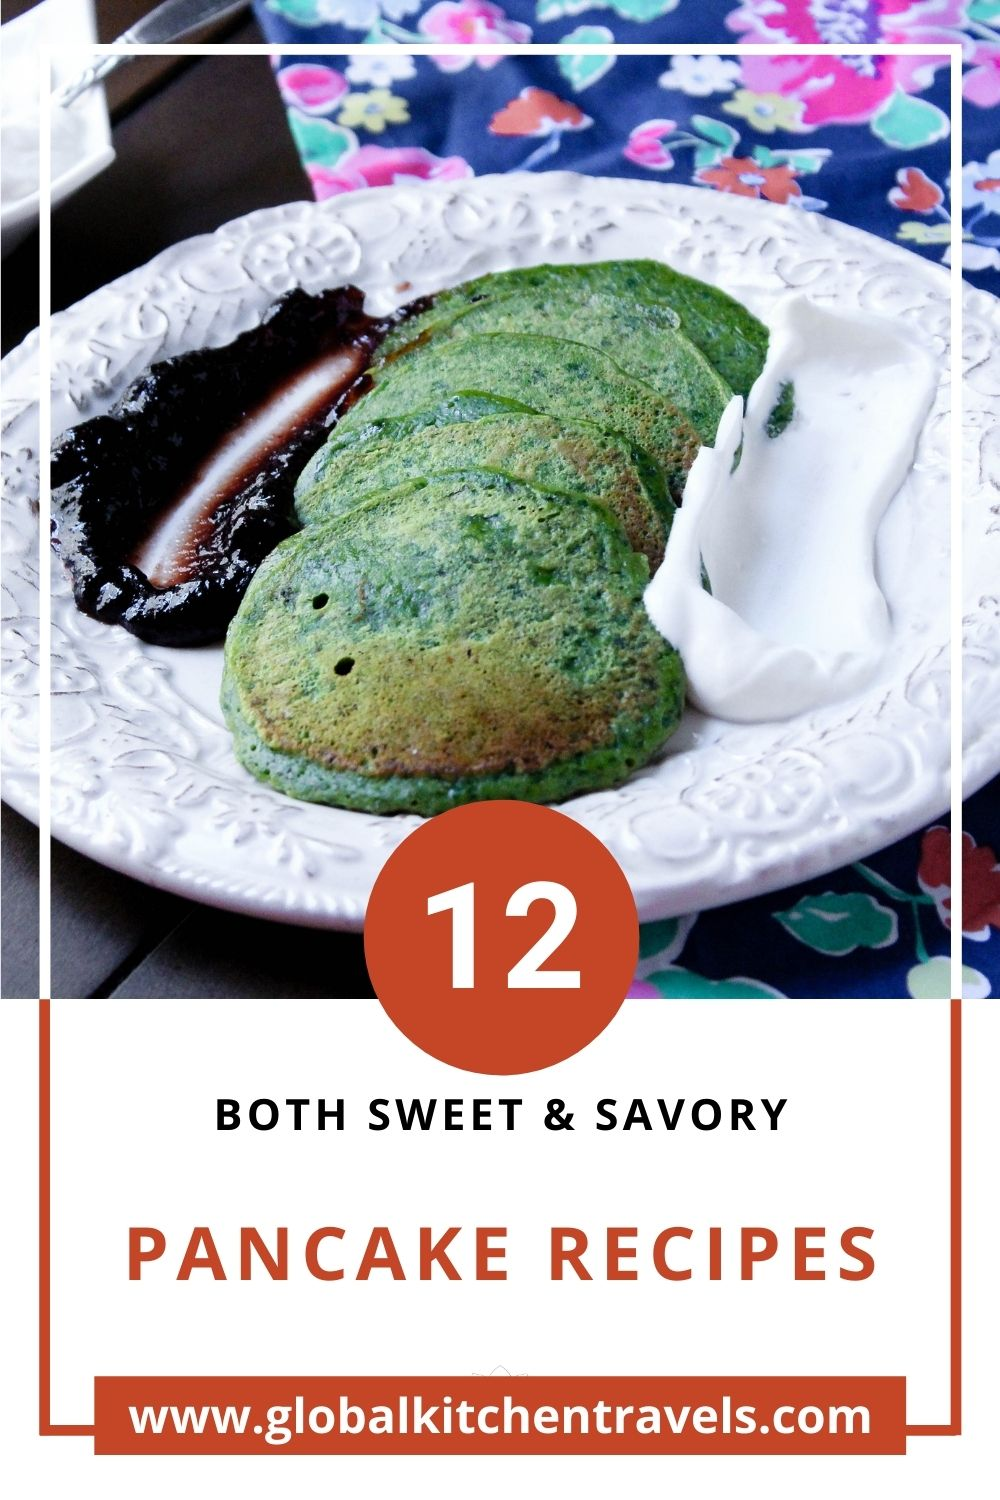 photo of spinach pancakes on plate with text